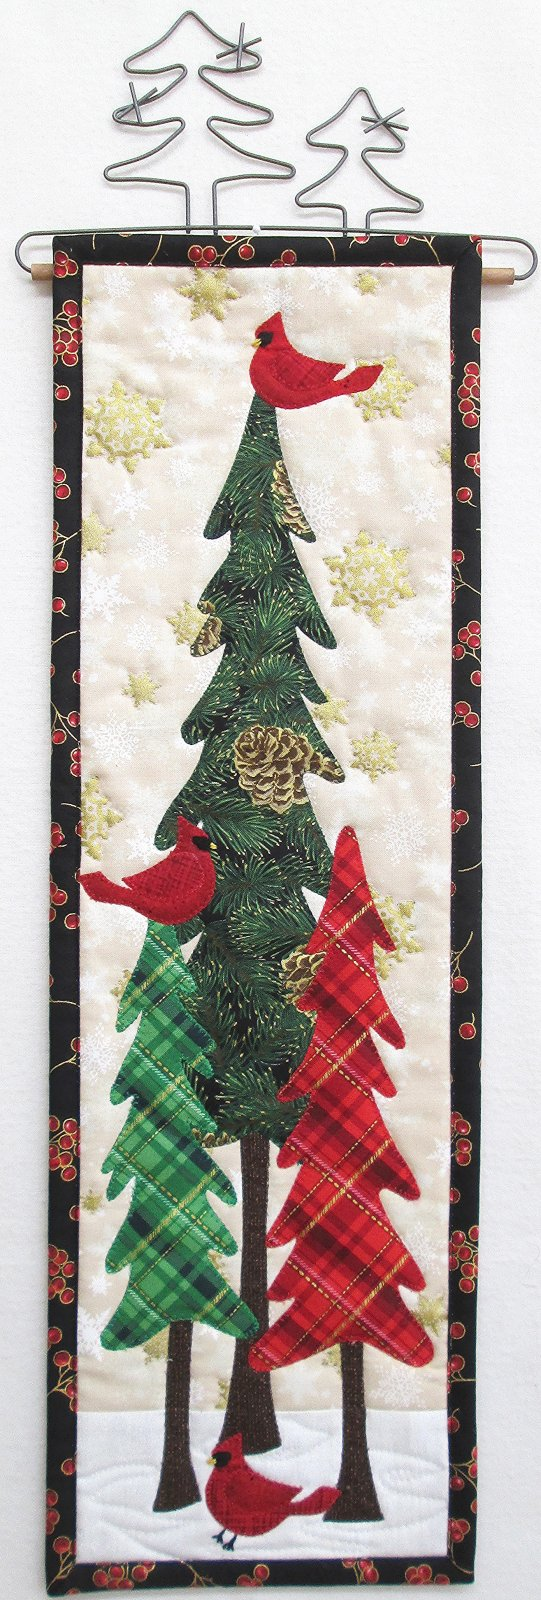 Cardinals In Winter Trees Wall Hanging Kit